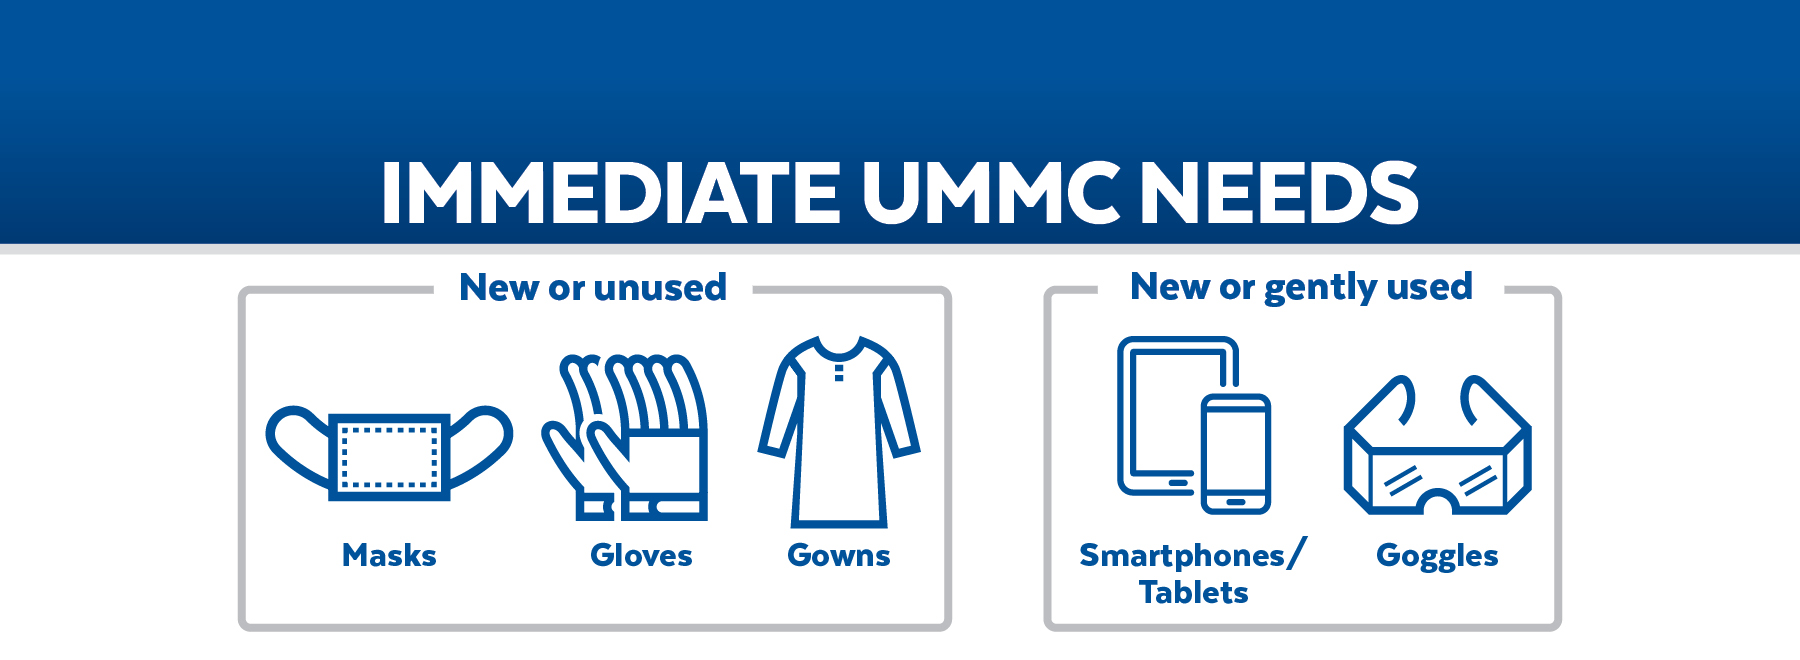 Immediate UMMC Needs - New or unused: masks, gloves, gowns. New or gently used:  smartphone/tablets, goggles.